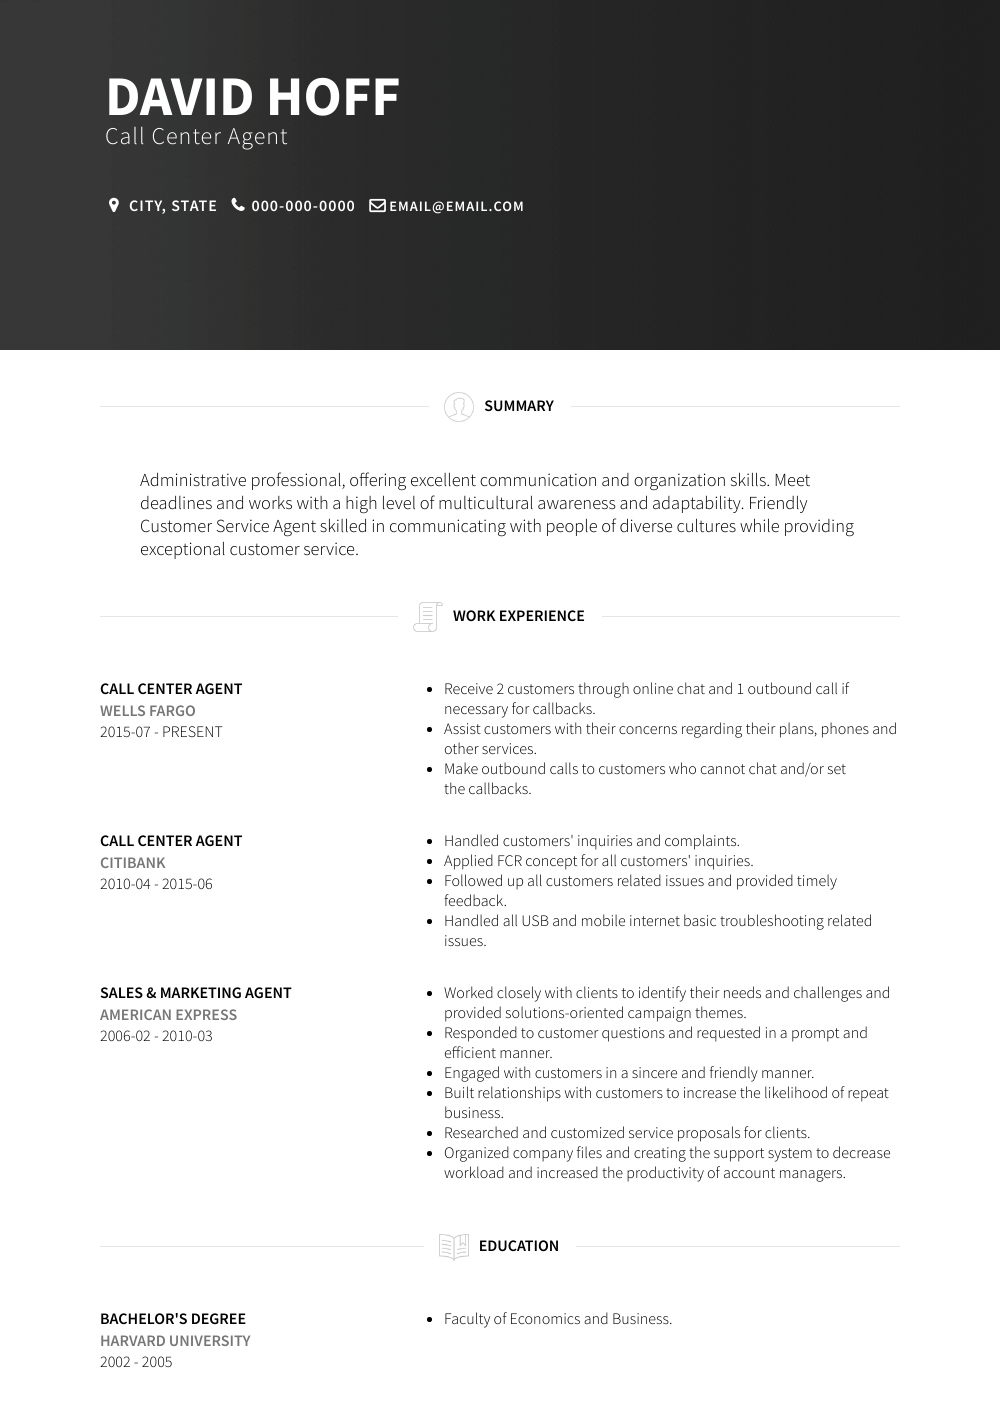 Call Center Agent Resume Sample